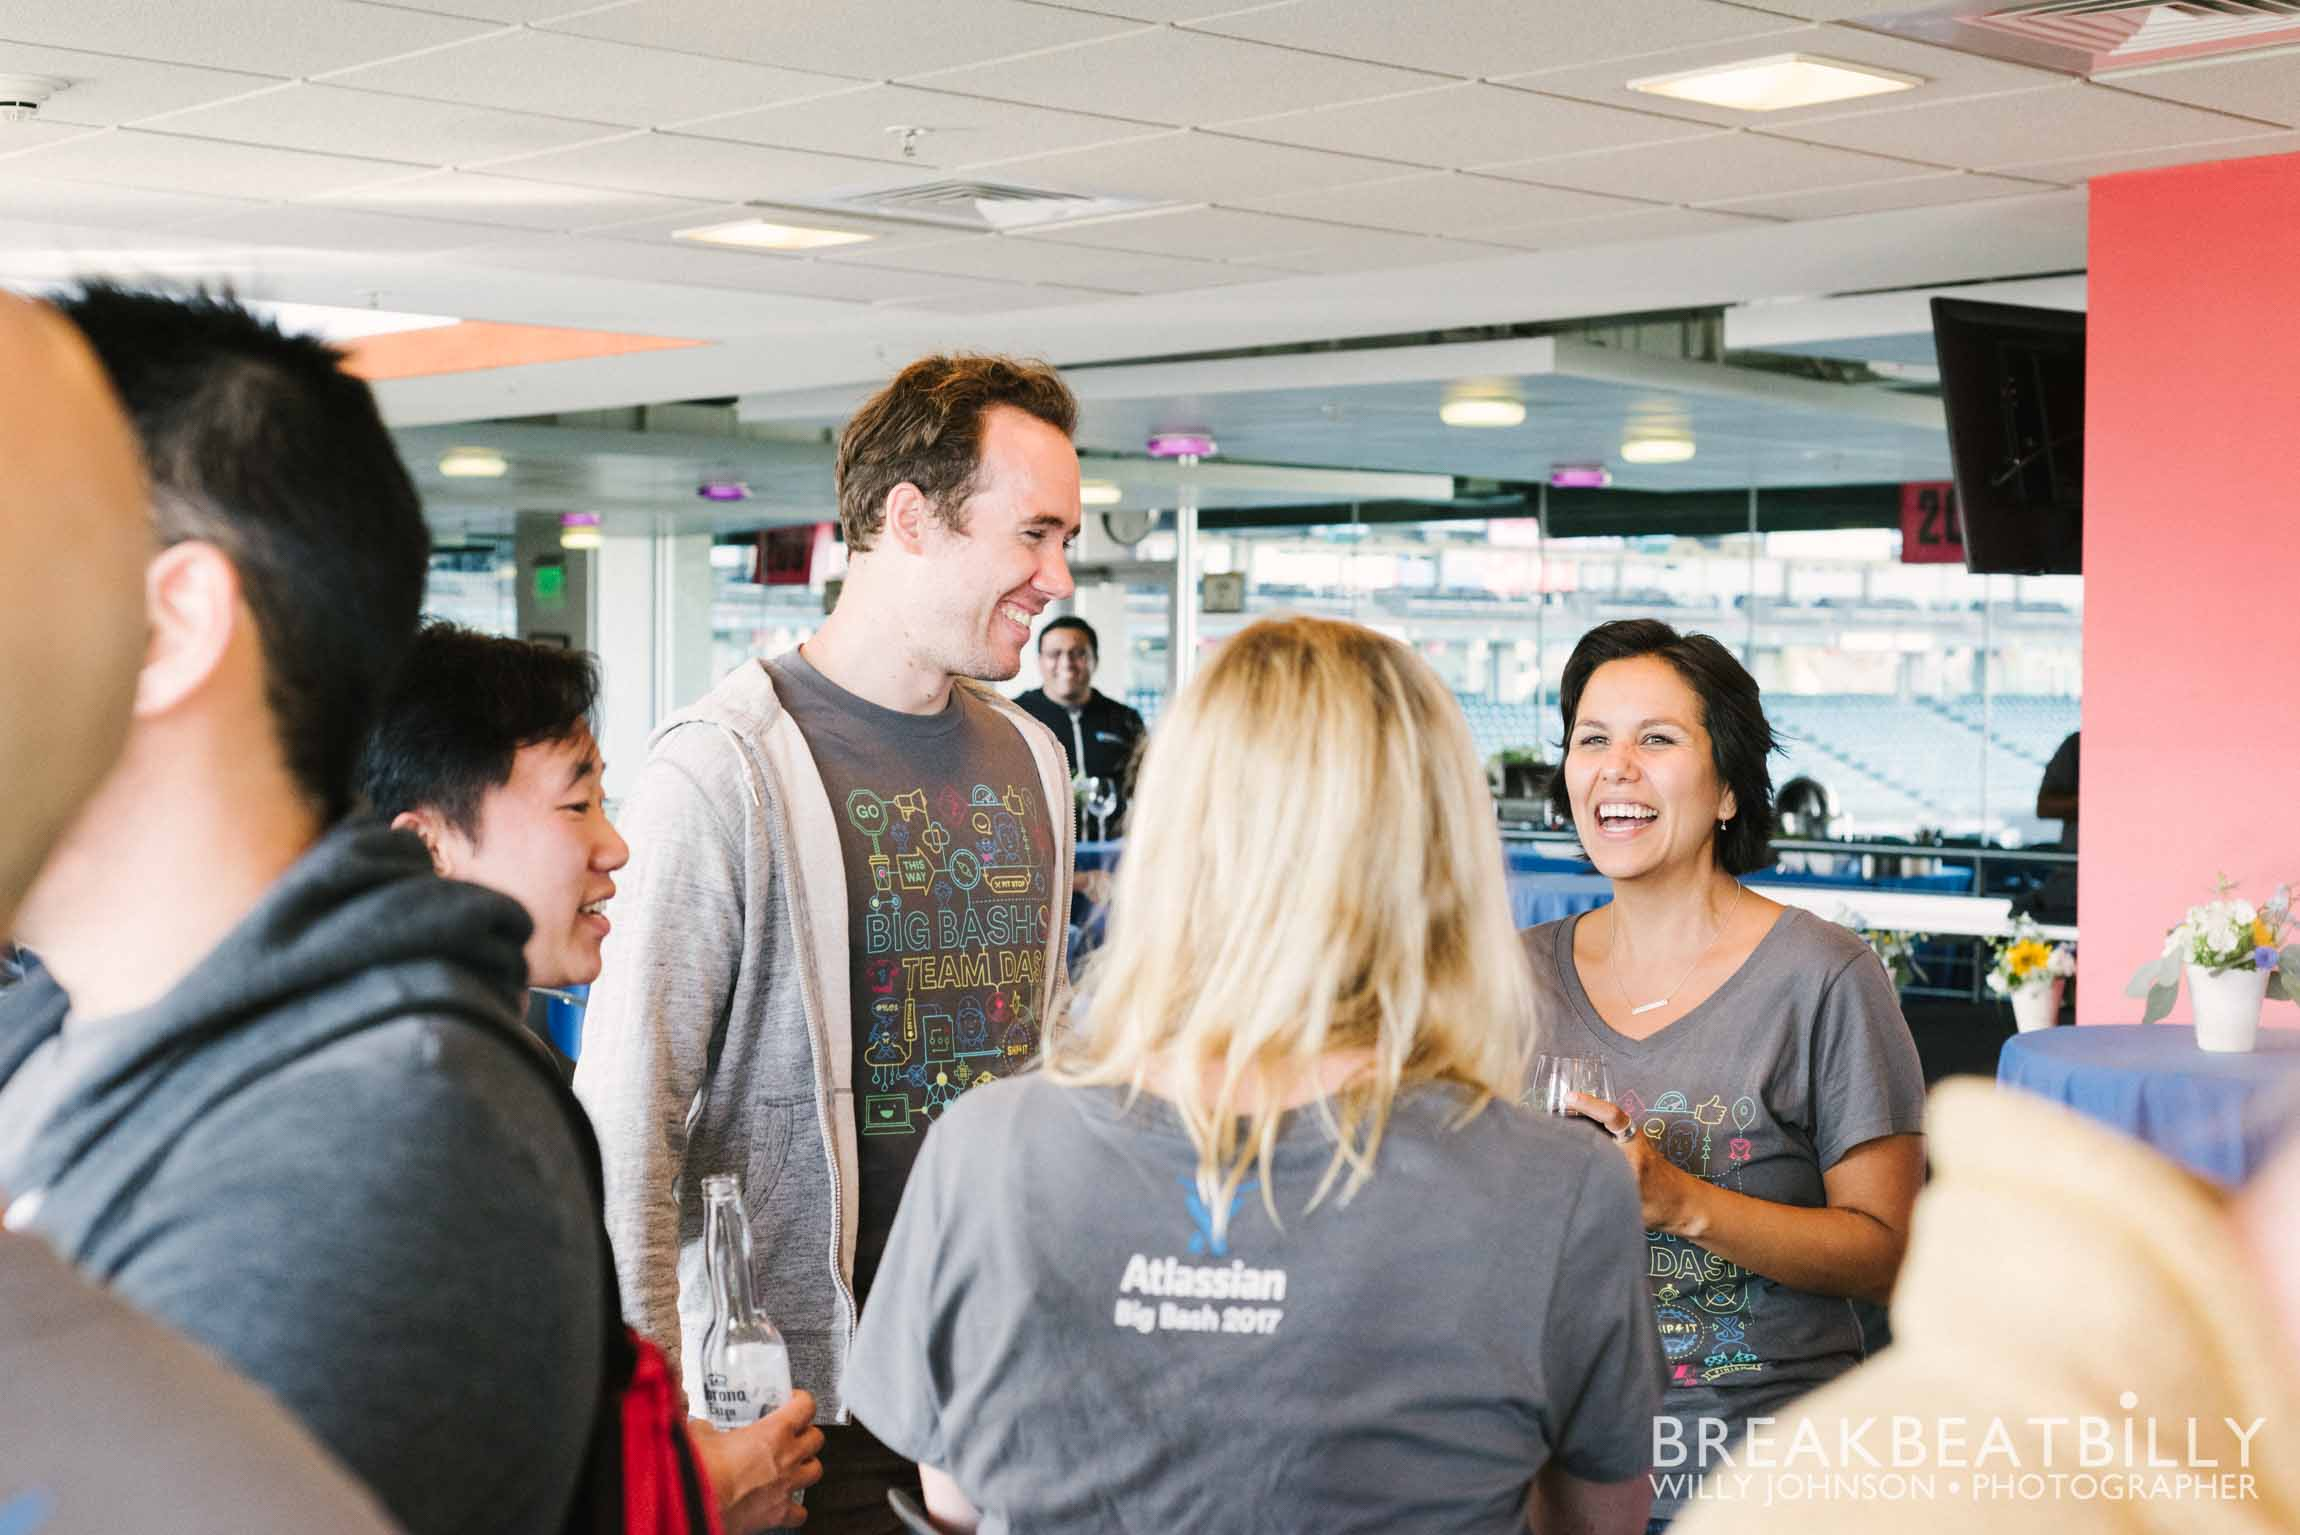 064_atlassian_sanfrancisco_event_photogarphy_oraclepark.jpg